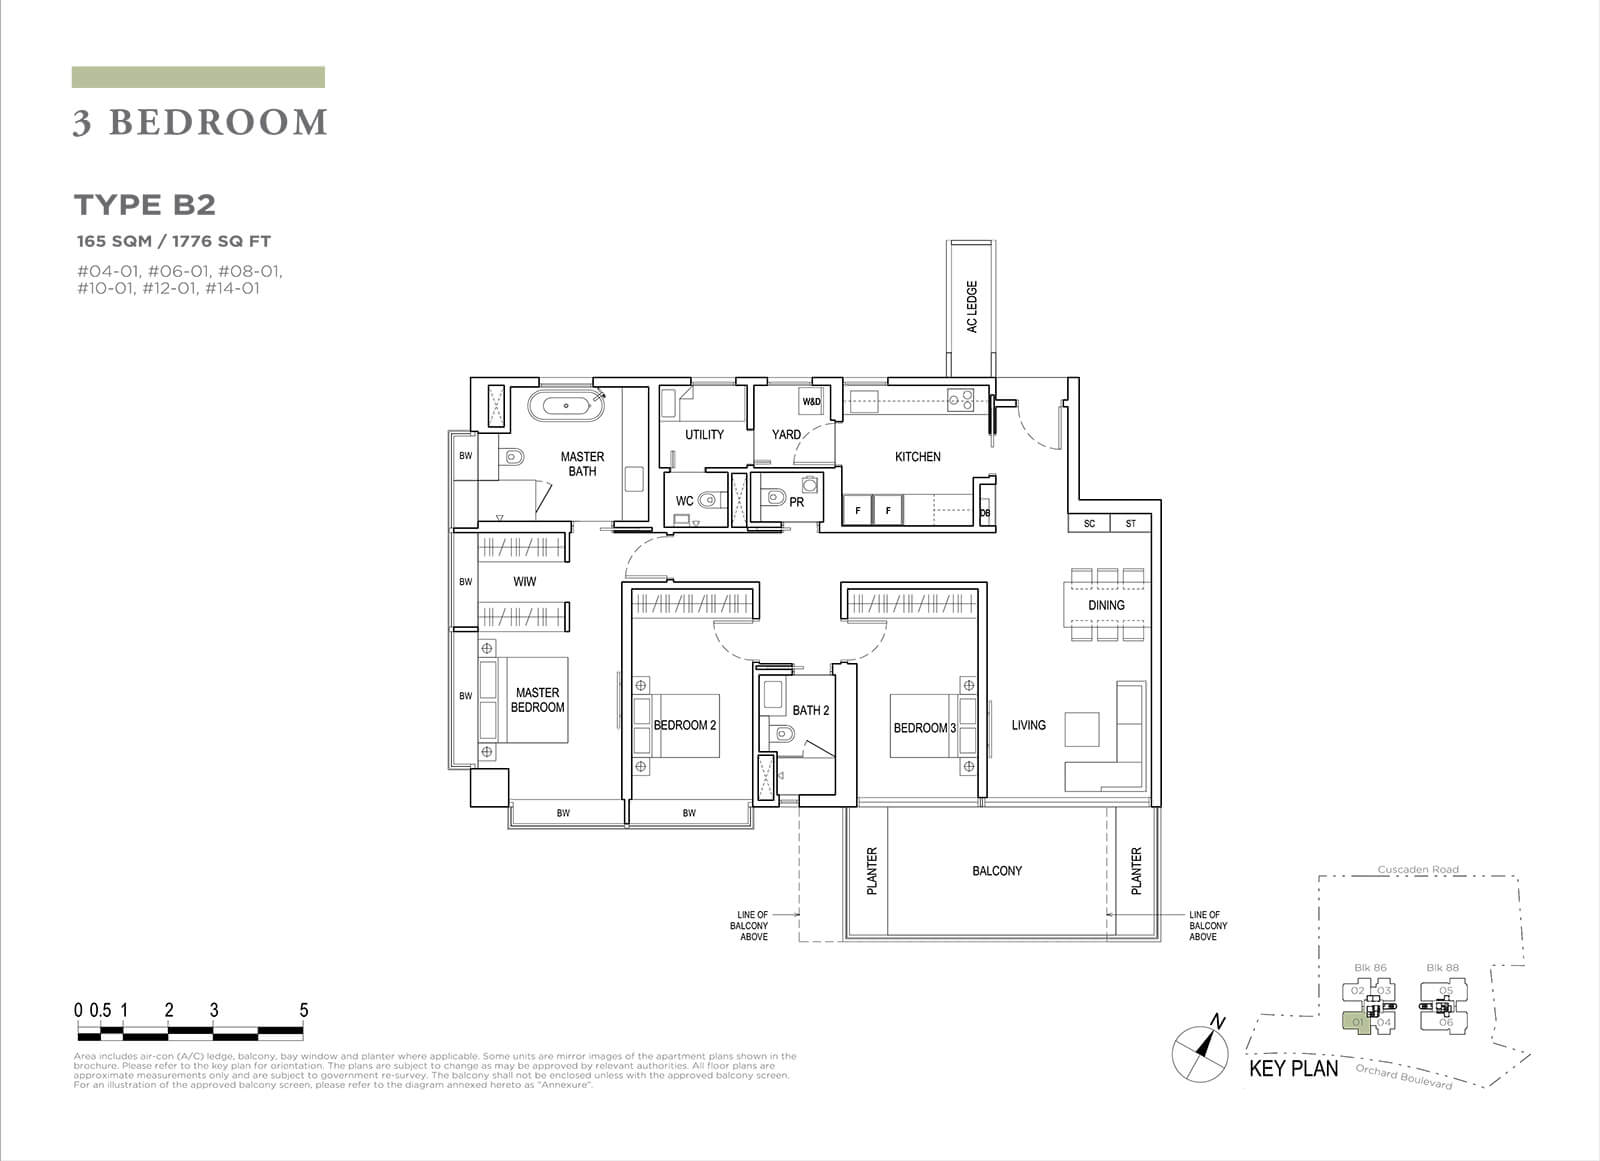 Boulevard 88 Floor Plan 3 Bedroom Type B2